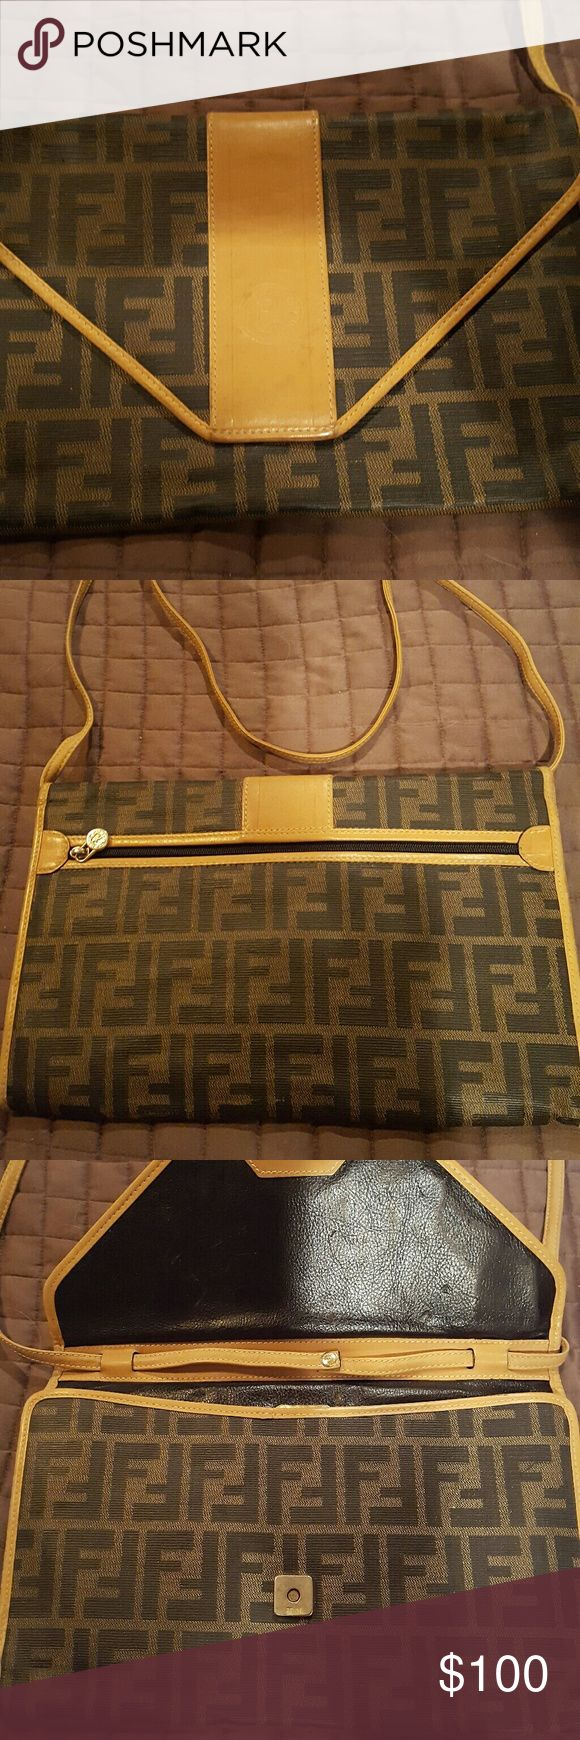 Authentic MonogramVintage Fendi Purse Crossbody Beautiful Purse in very good condition. Crossbody strap can be remove if you like. $100 firm Fendi  Accessories